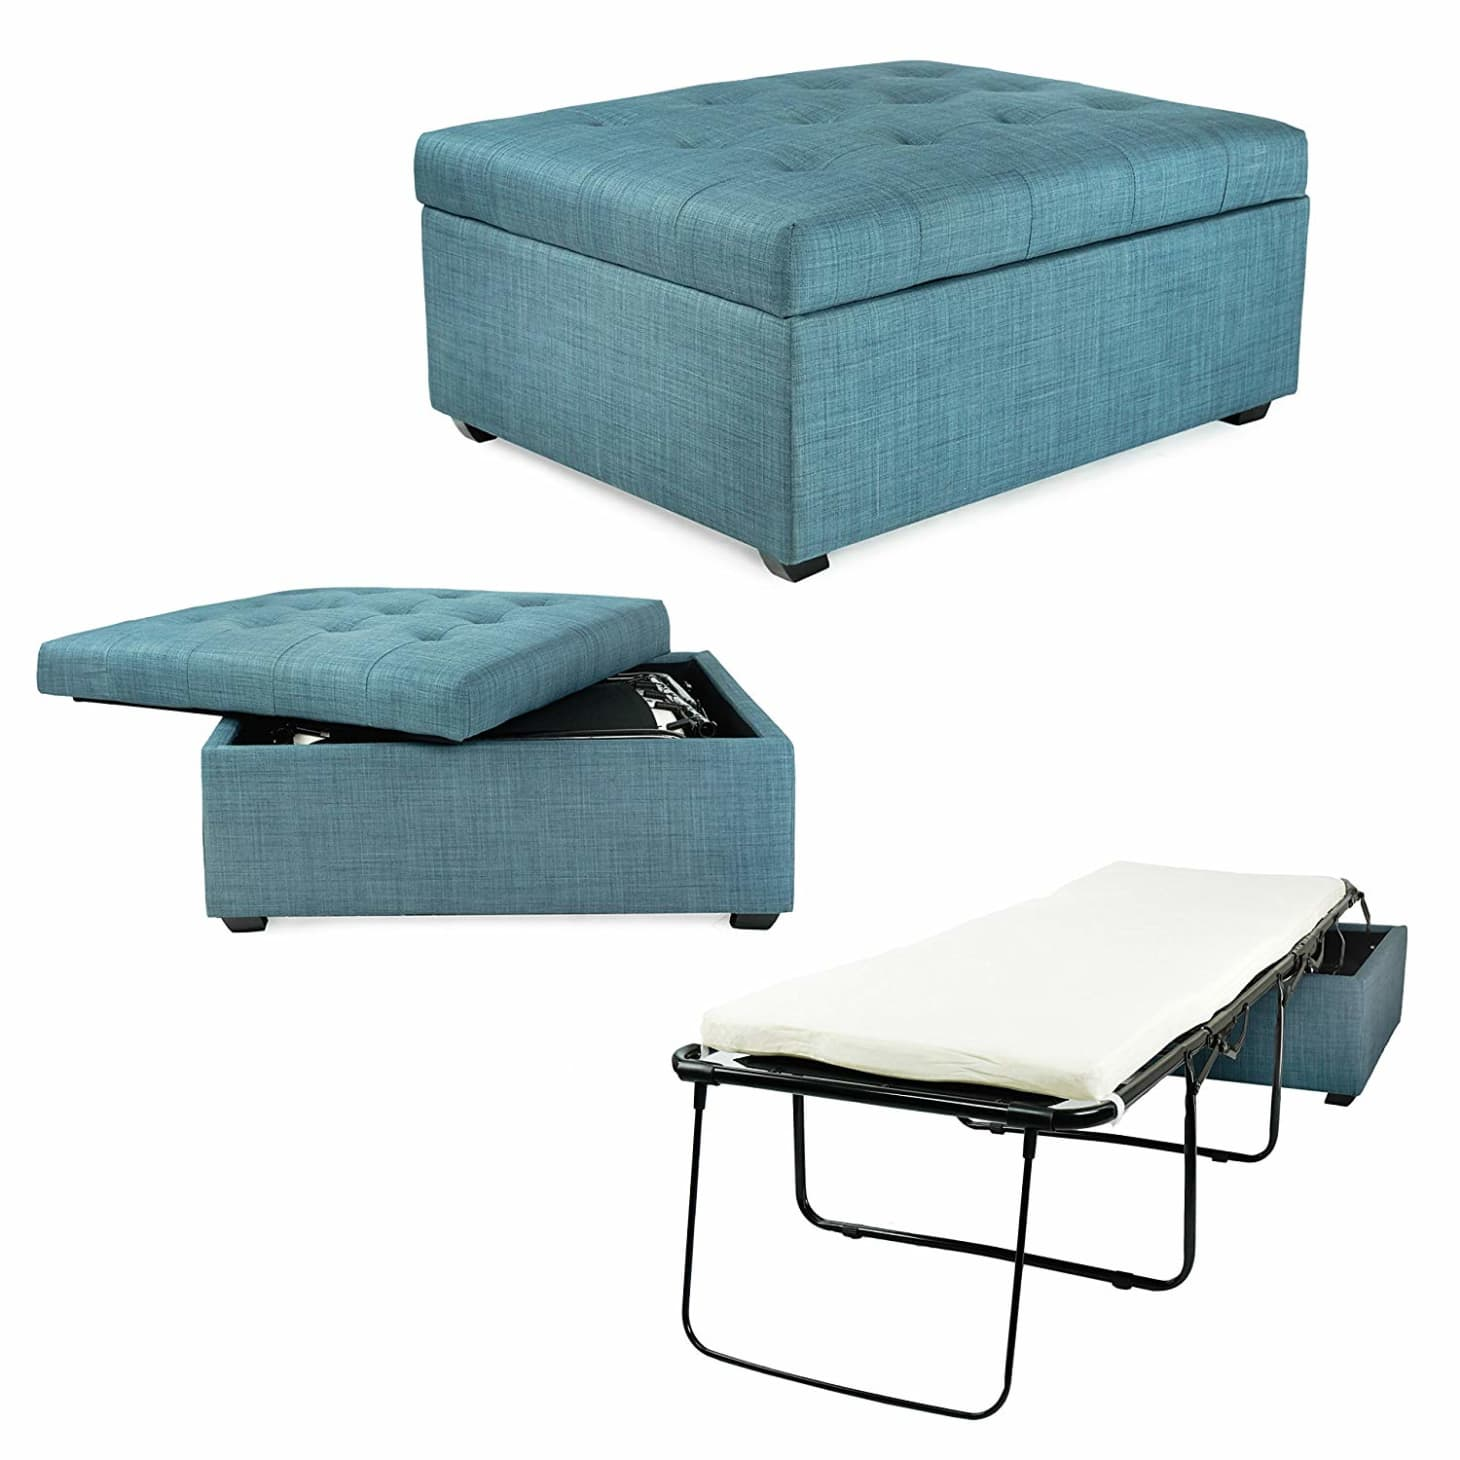 Amazing Buy An Ottoman Bed For Under 200 Apartment Therapy Customarchery Wood Chair Design Ideas Customarcherynet